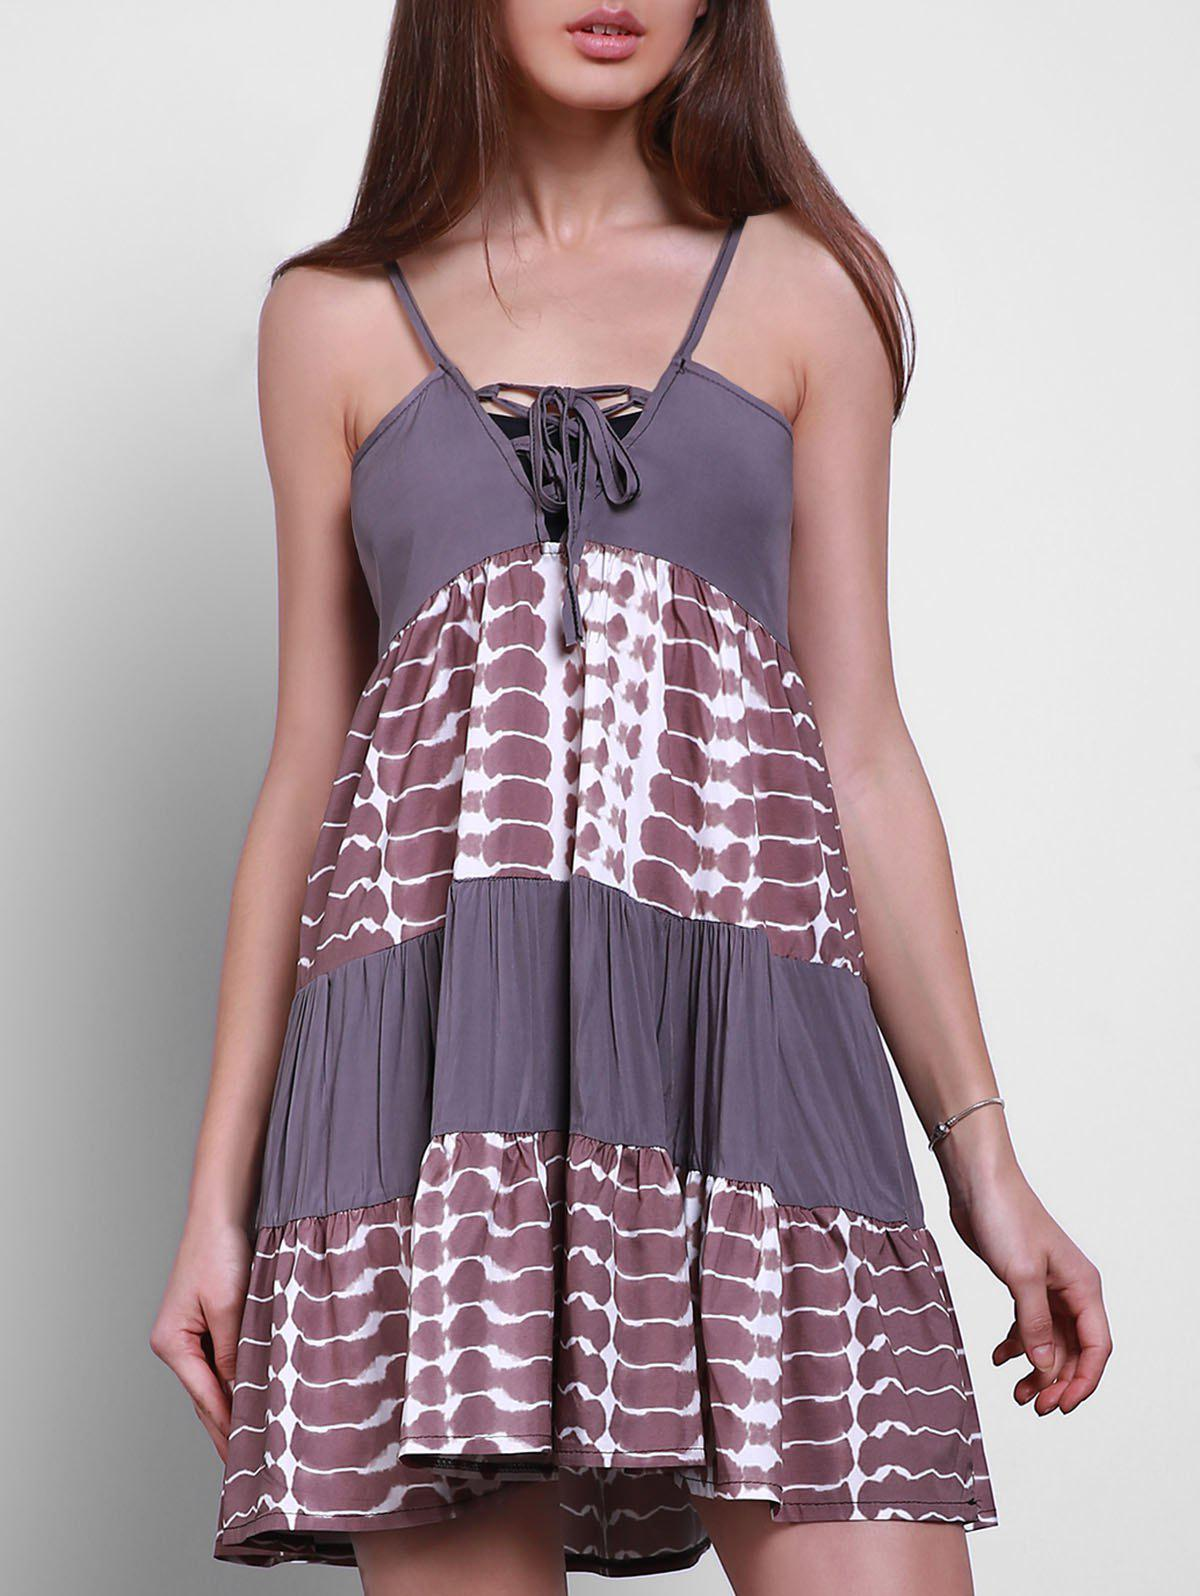 Casual Style Spaghetti Strap Sleeveless Digital Print Lace-Up Women's Sundress - GRAY L